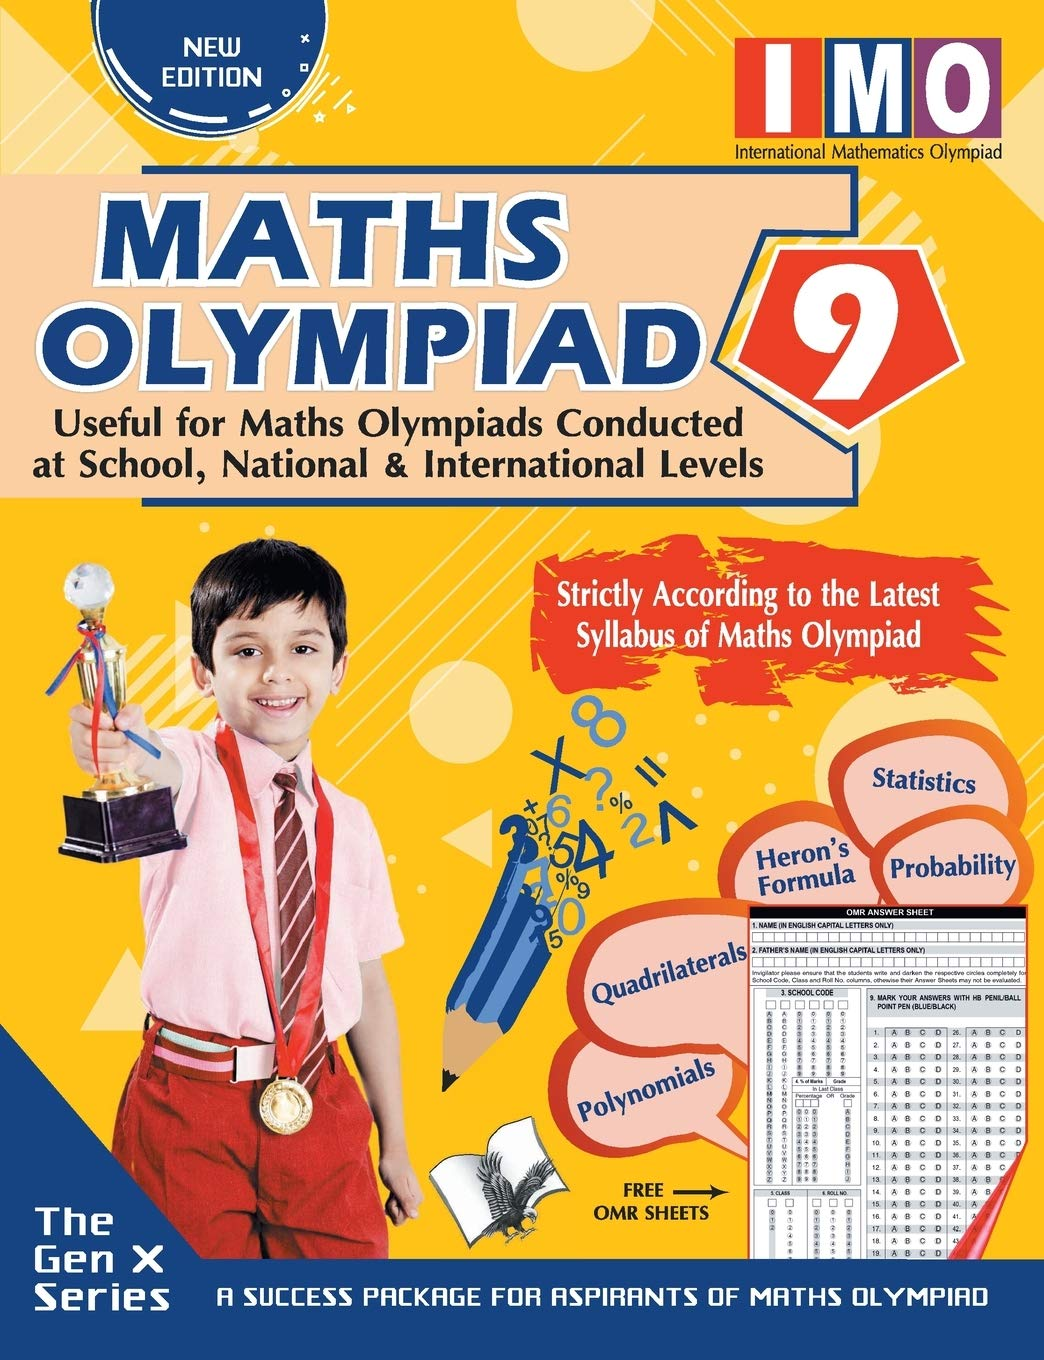 MATHS OLYMPIAD 9 (USEFUL FOR MATHS OLYMPIADS CONDUCTED AT SCHOOL, NATIONAL & INTERNATIONAL LEVELS)